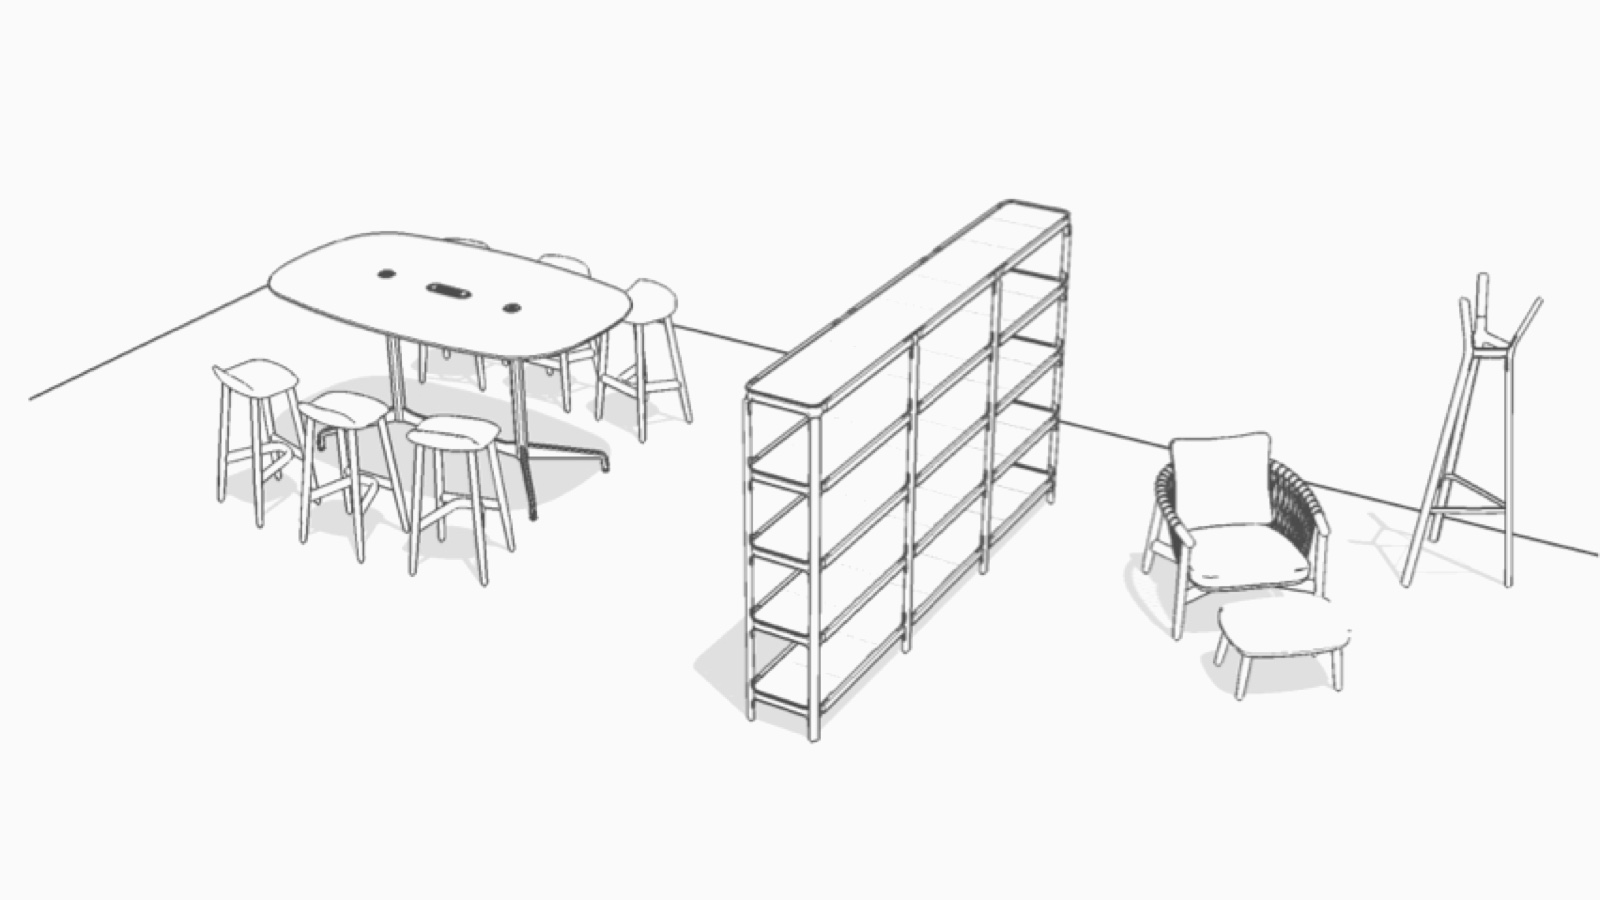 Overhead isometric illustration of this Workshop setting.